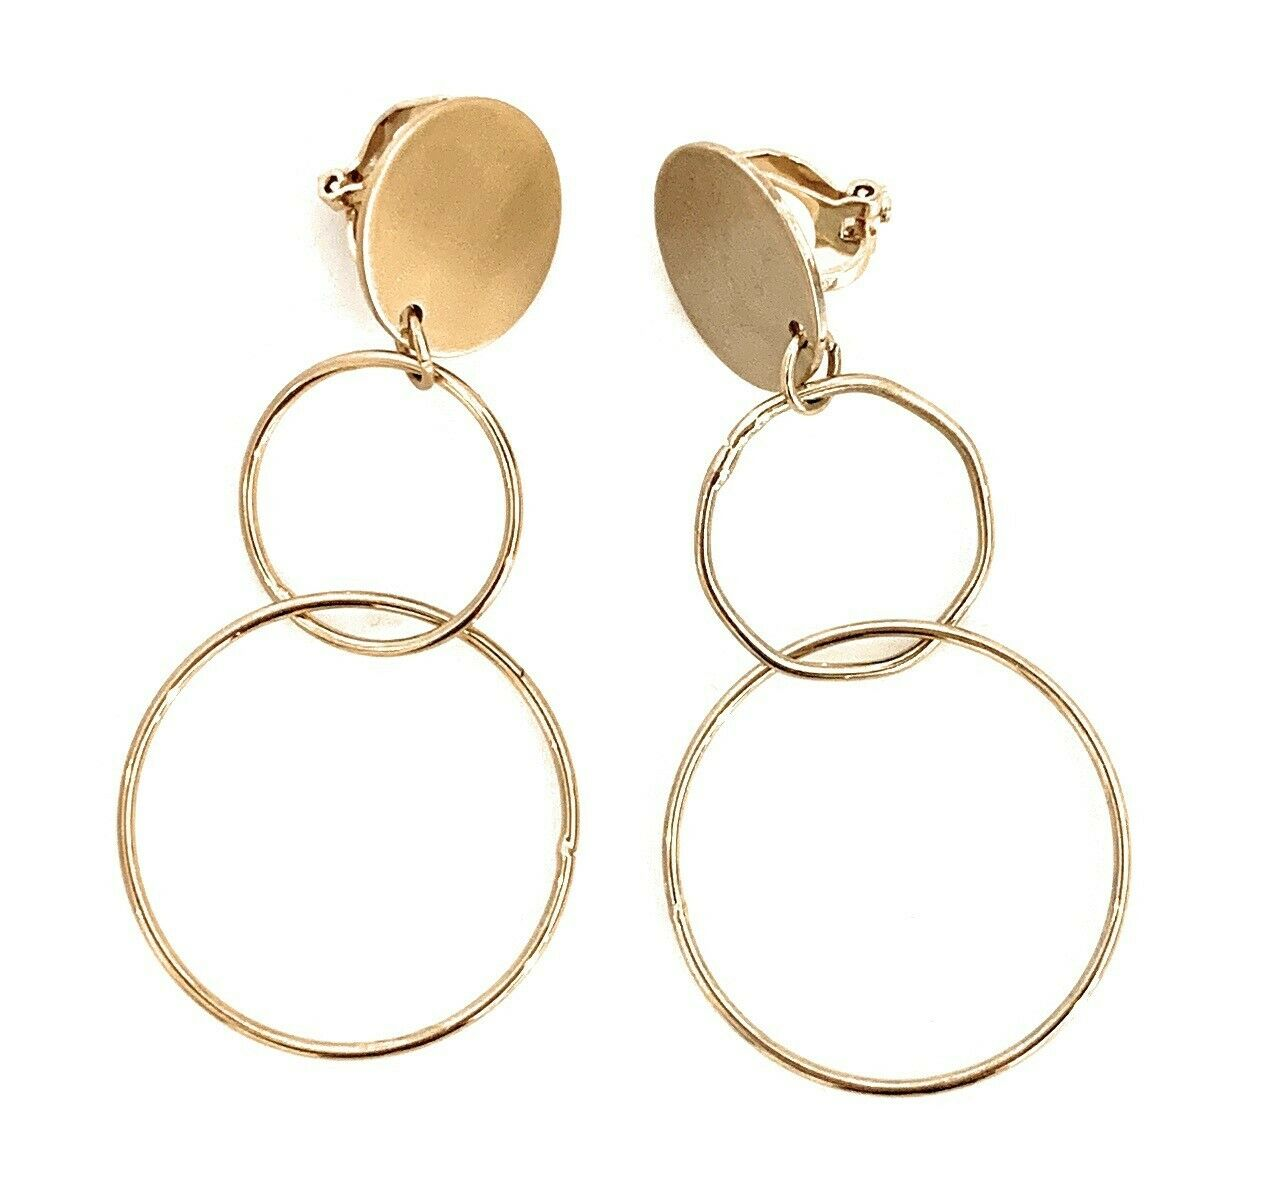 Women's Girls' Fashion Dangle Hoop CLIP ON Hoops Earrings Light Weight Copper - Vintage Gold